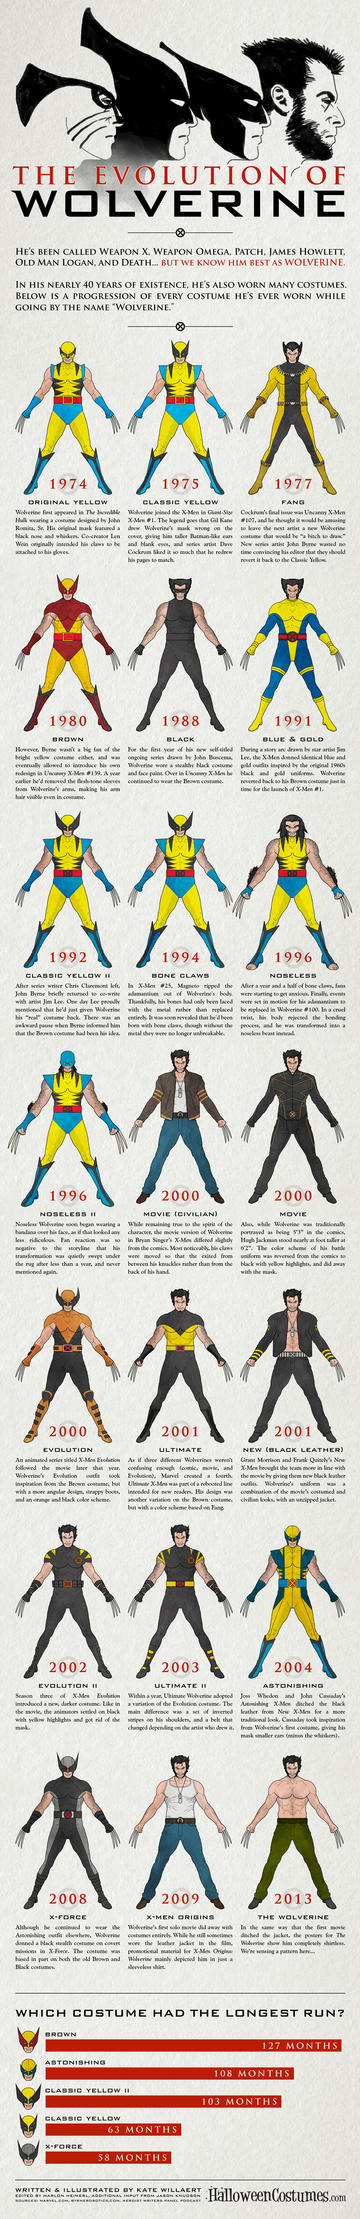 wolverine-infographic-FULL by xscapist